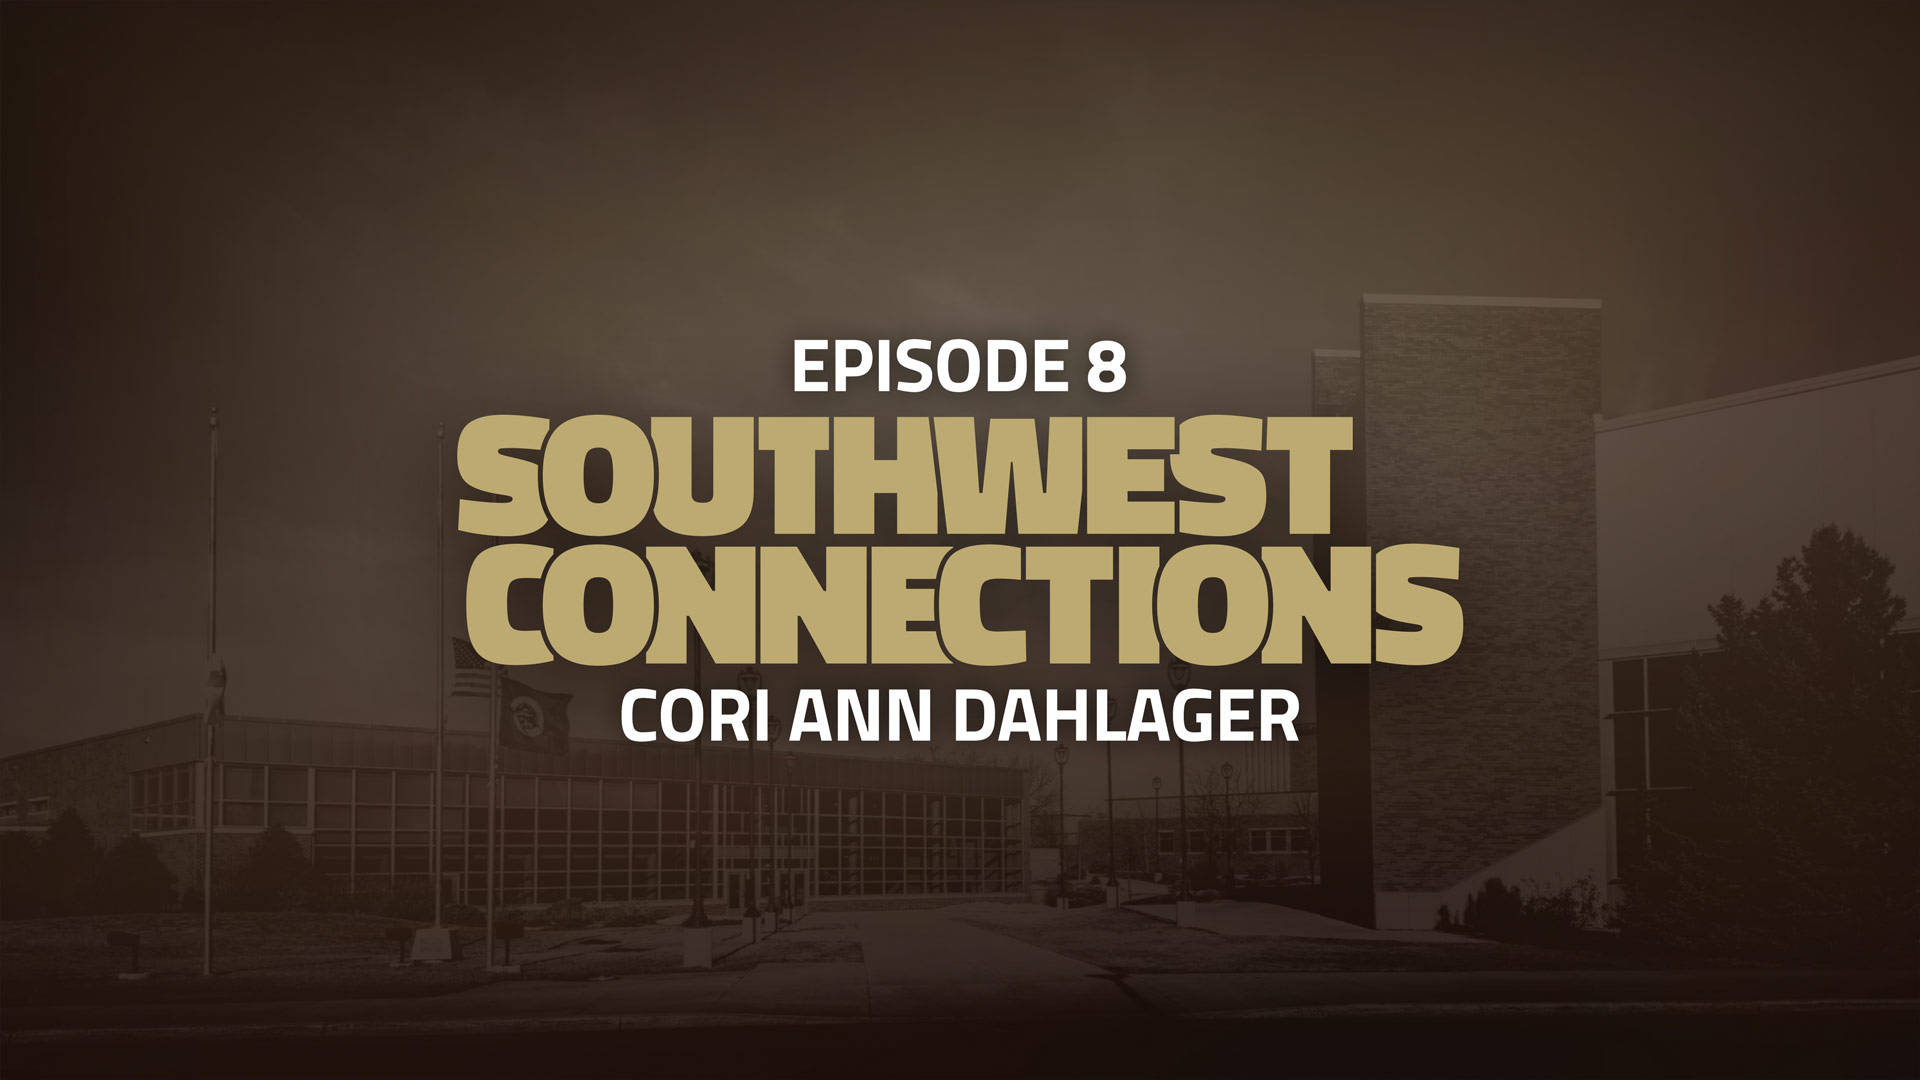 Southwest Connections Episode 8: Cori Ann Dahlager